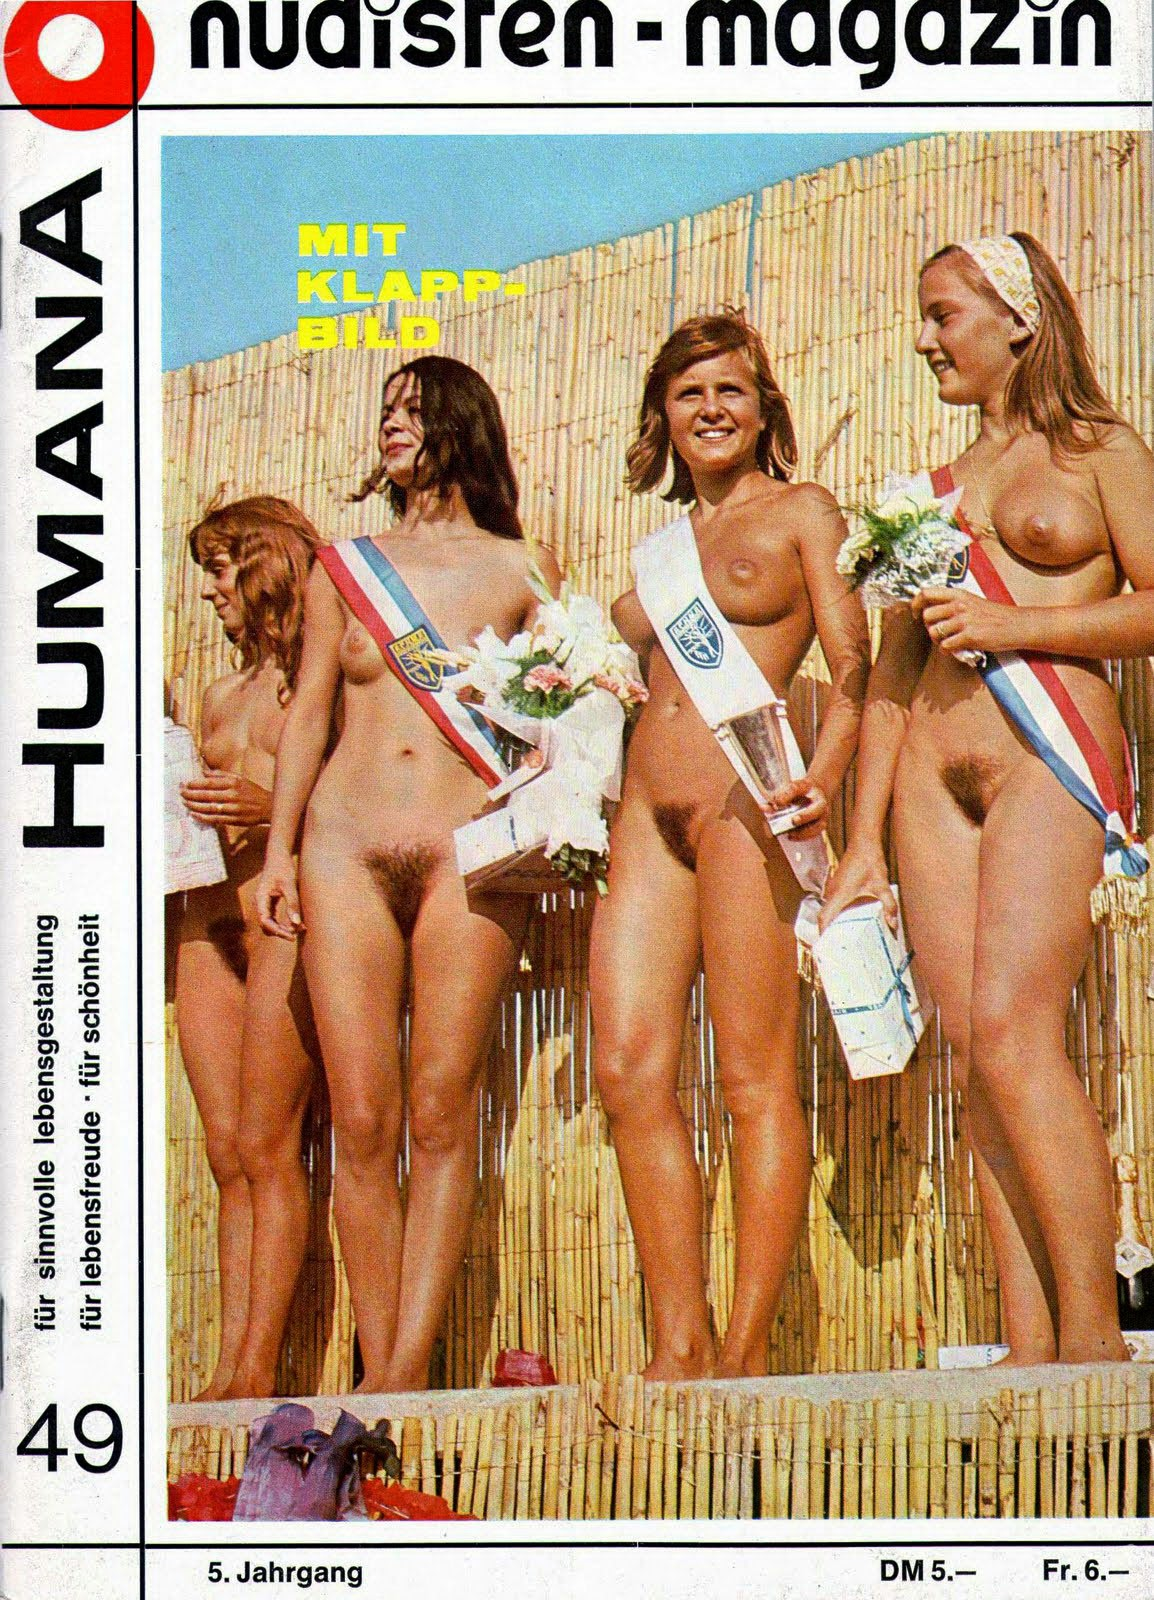 European nudist pageants